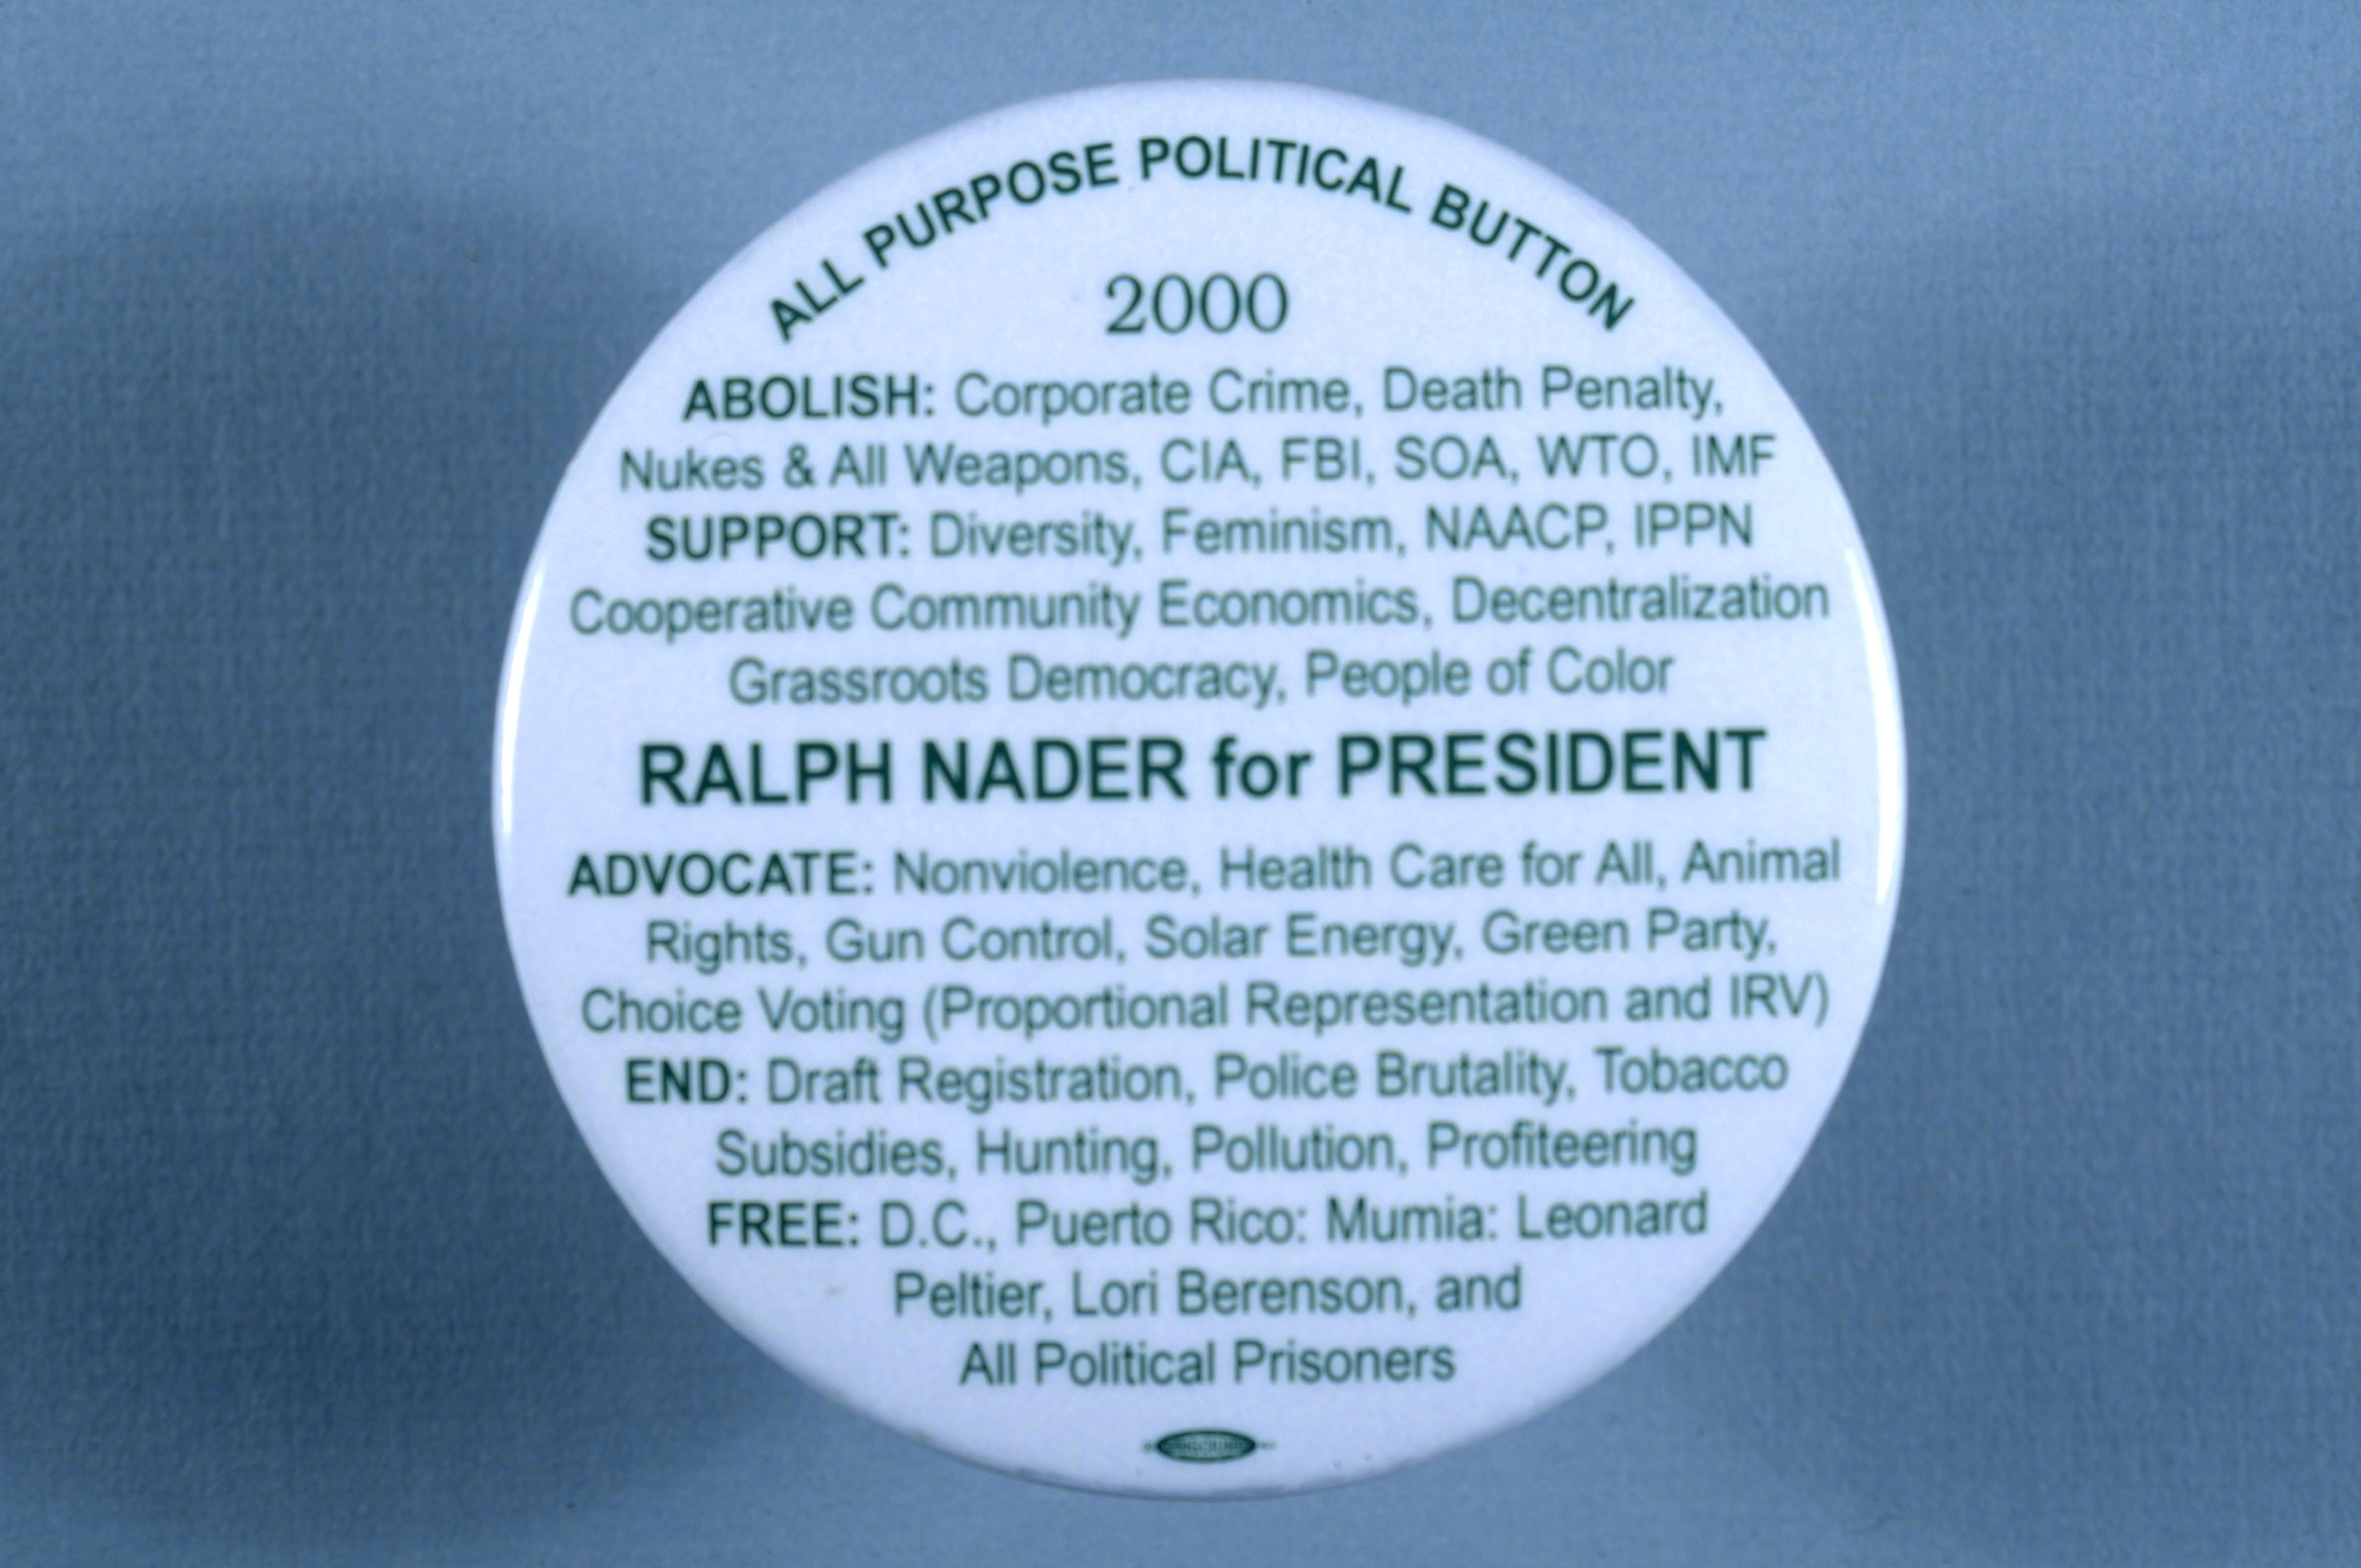 Campaign Button For Ralph Nader Who Ran As The Green Partys Candidate In 2000